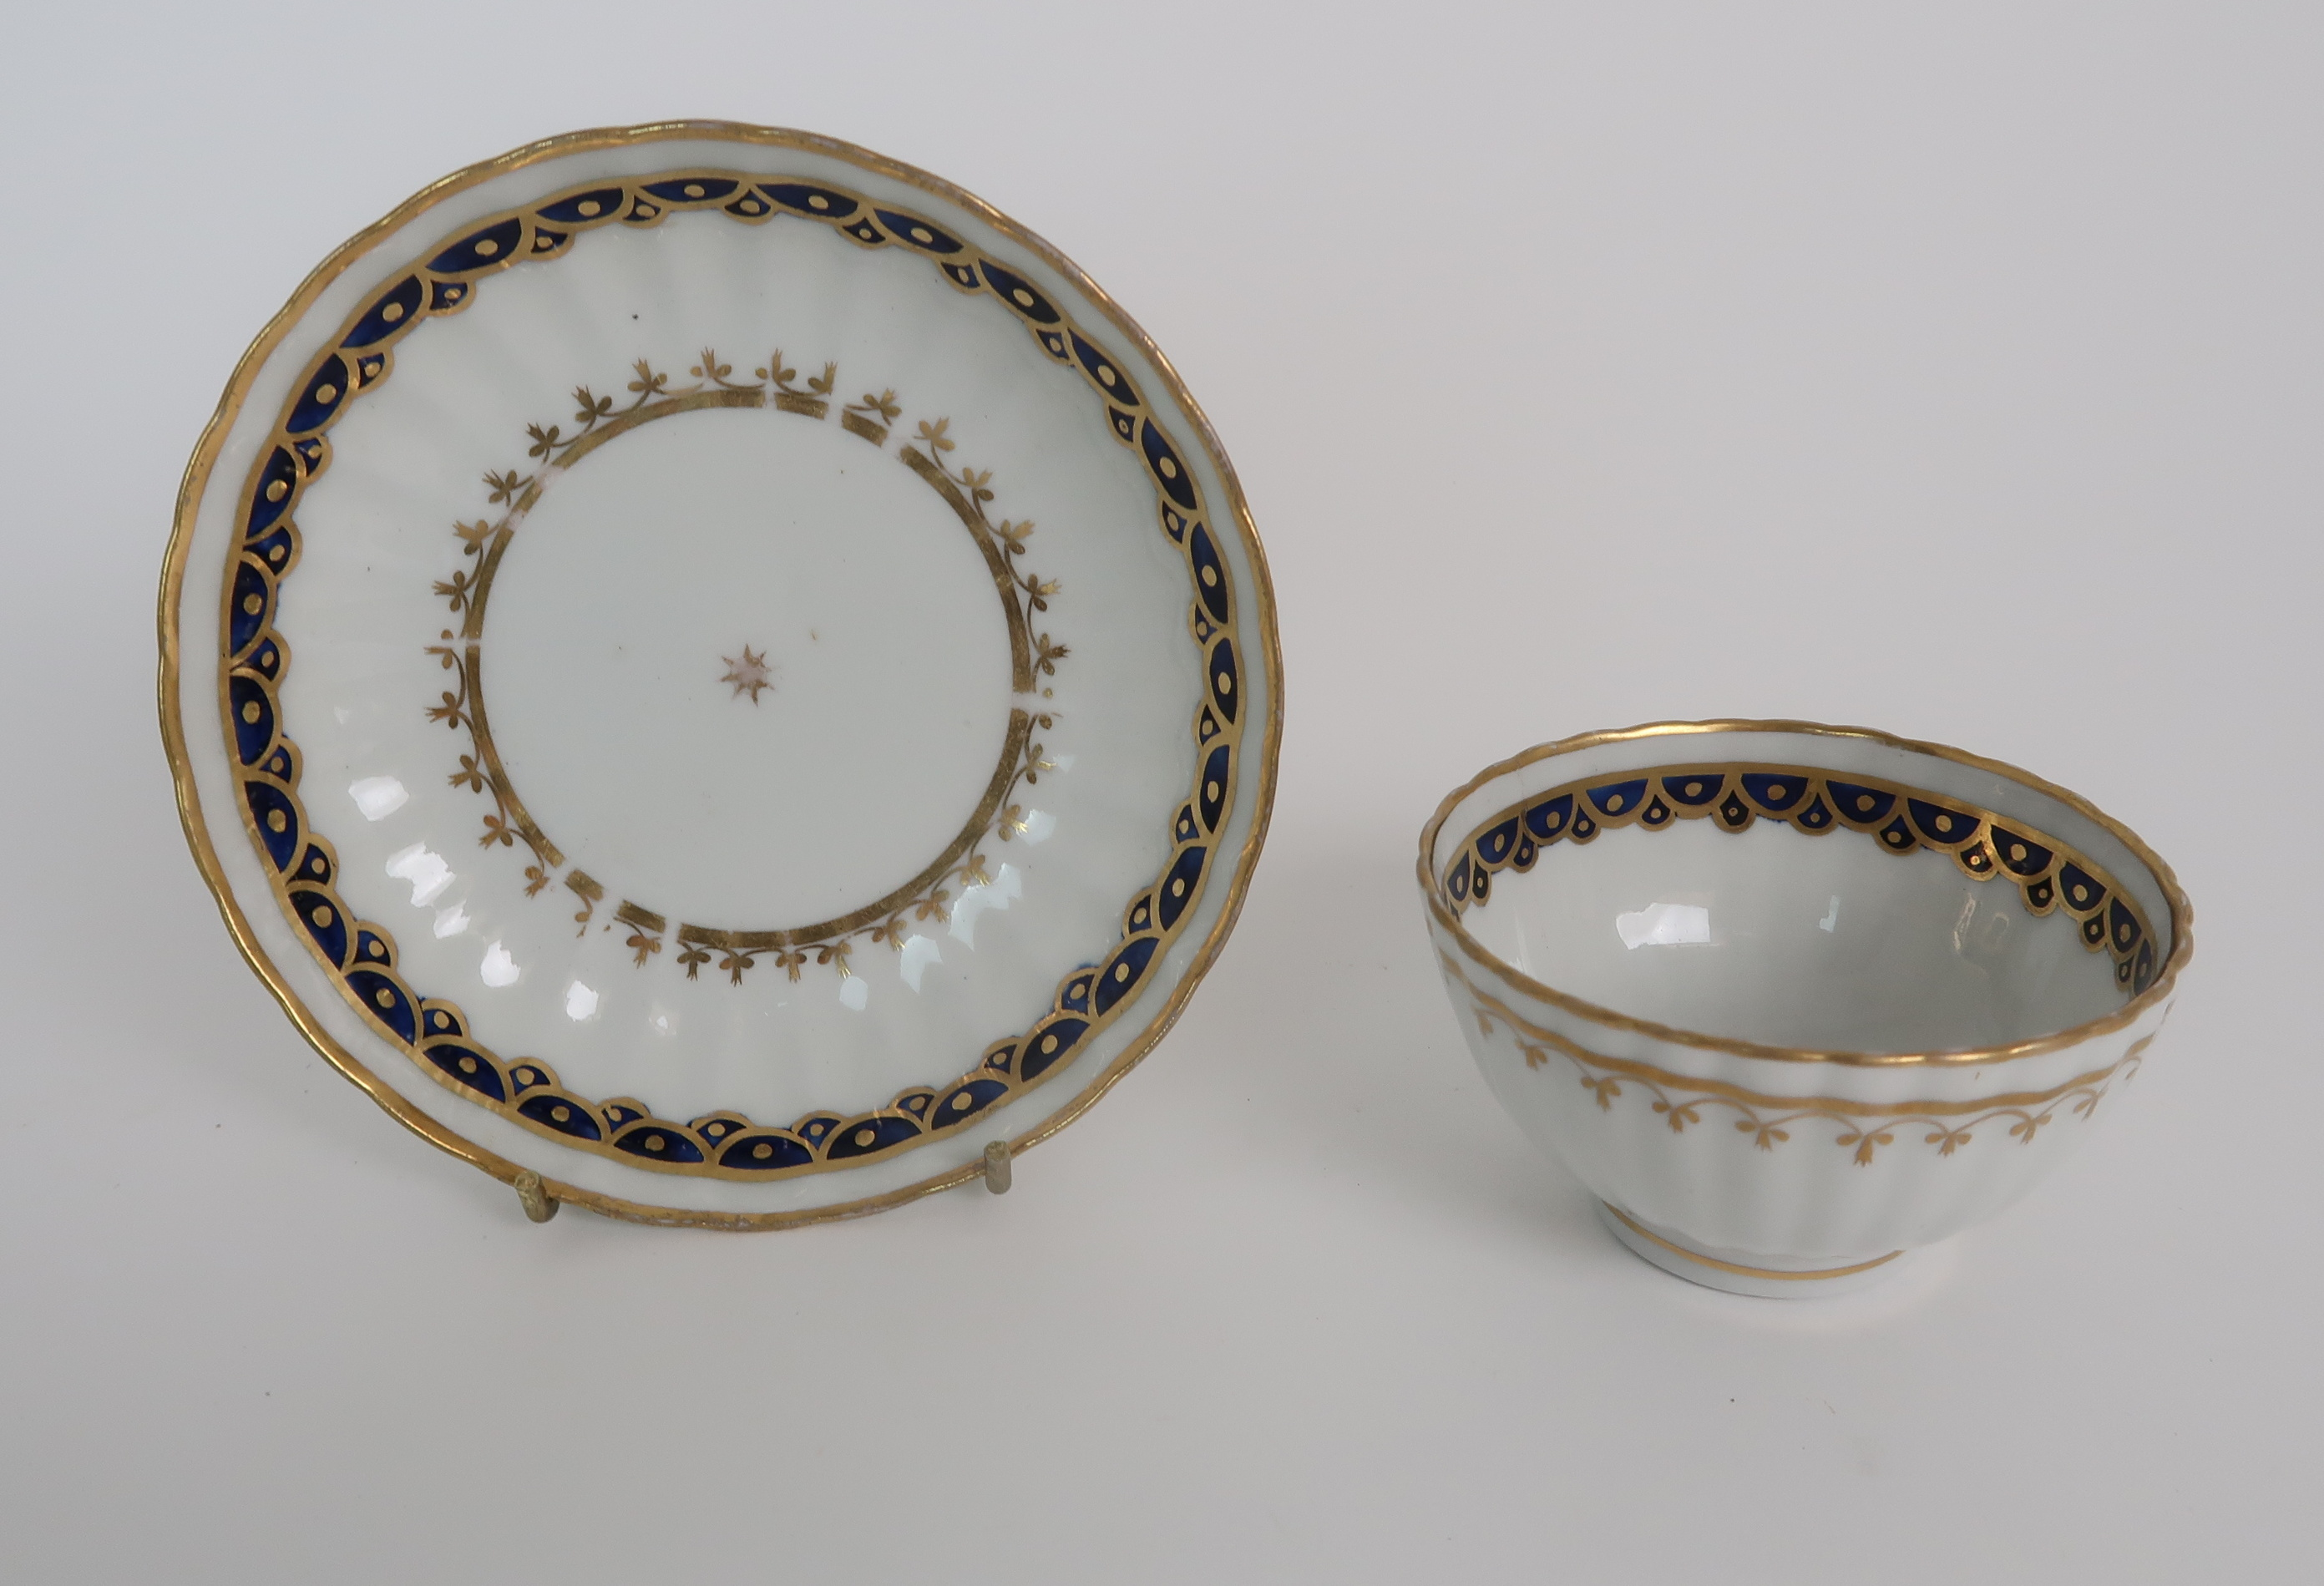 A COLLECTION OF 19TH CENTURY ENGLISH BLUE AND GILT DECORATED TEA AND COFFEE WARES including a - Image 20 of 23